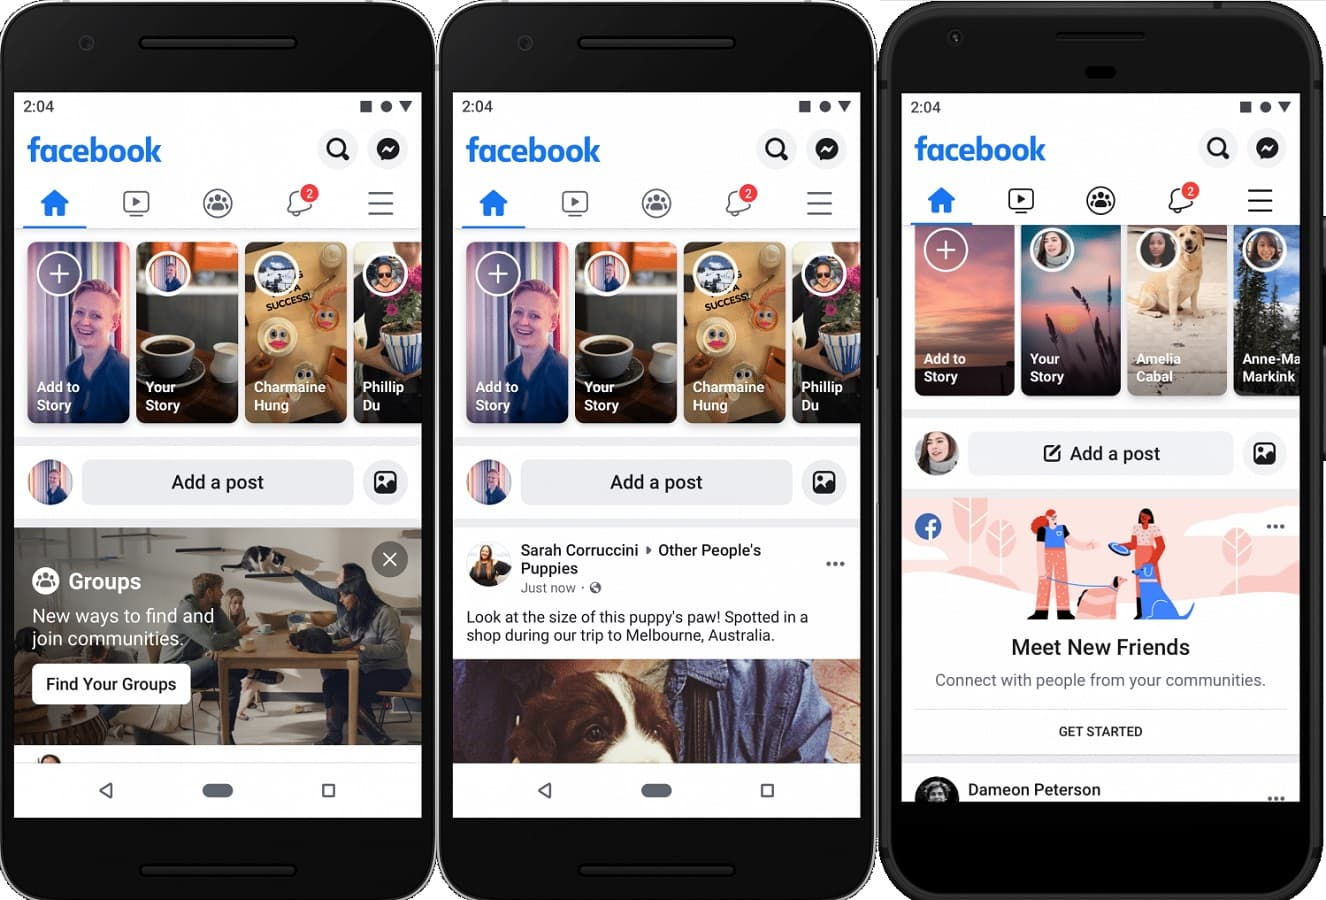 facebook mobile update showing at f8 2019